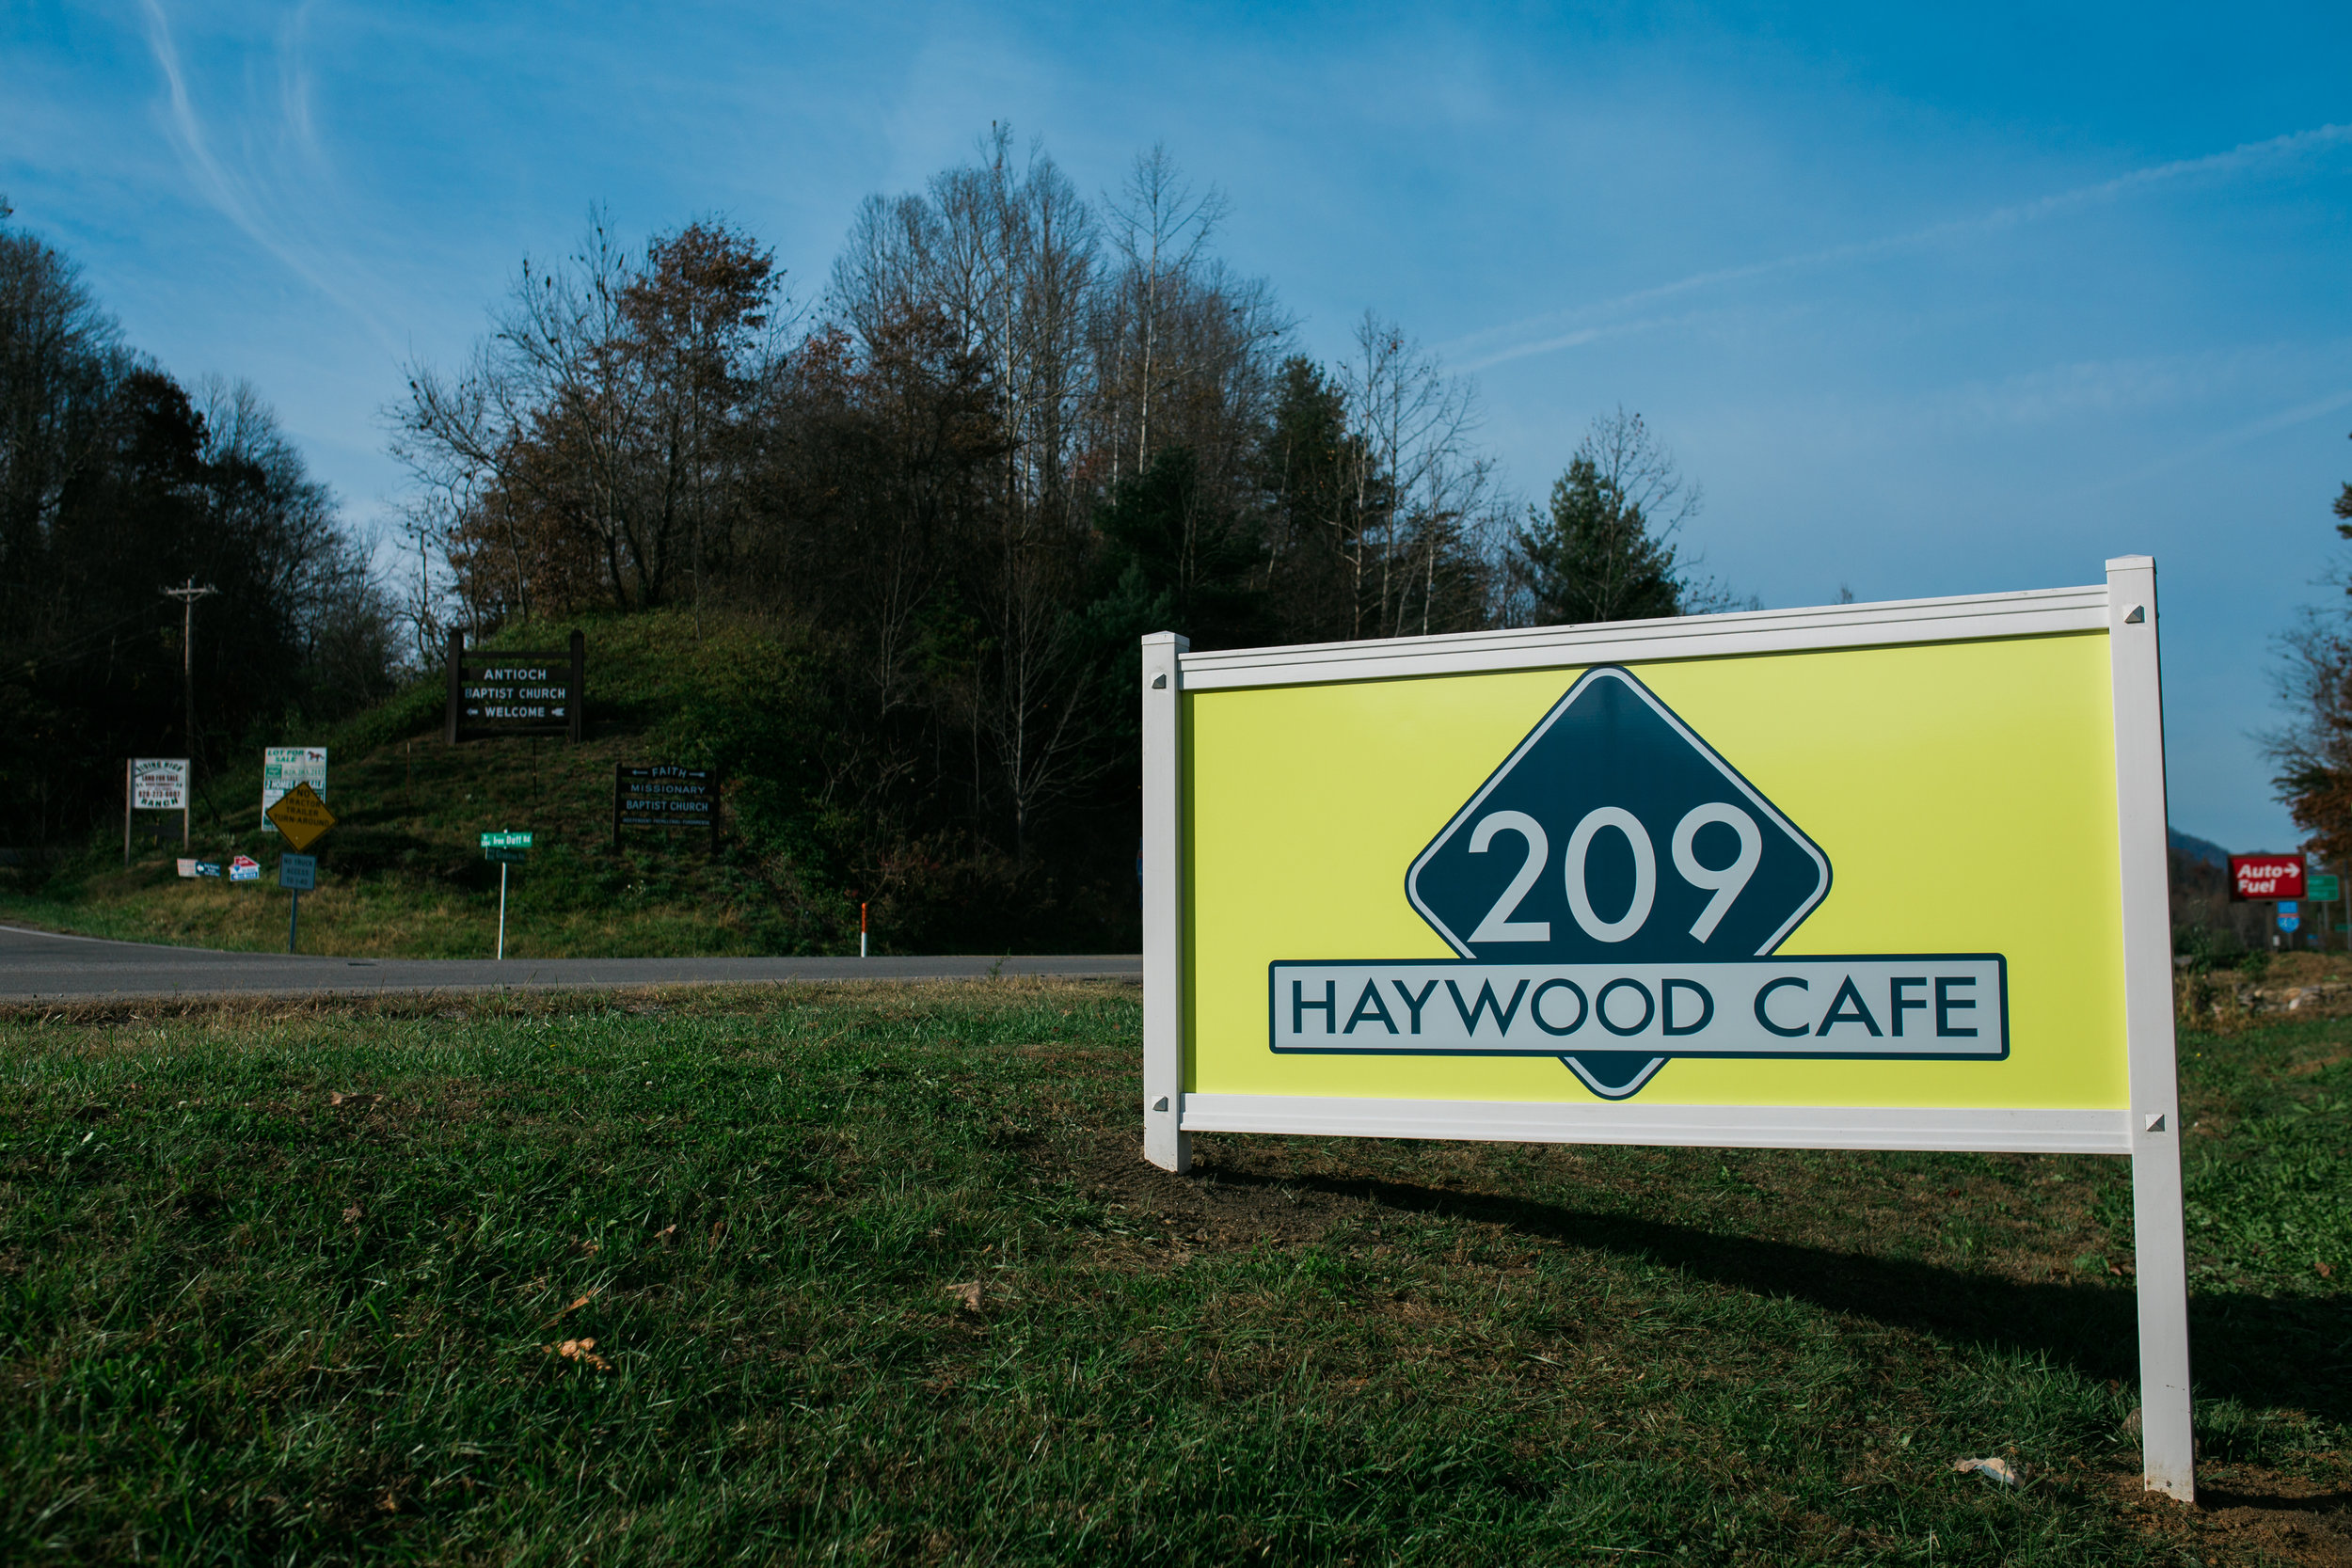 the haywood 209 cafe road side with bright blue skies and trees in the background